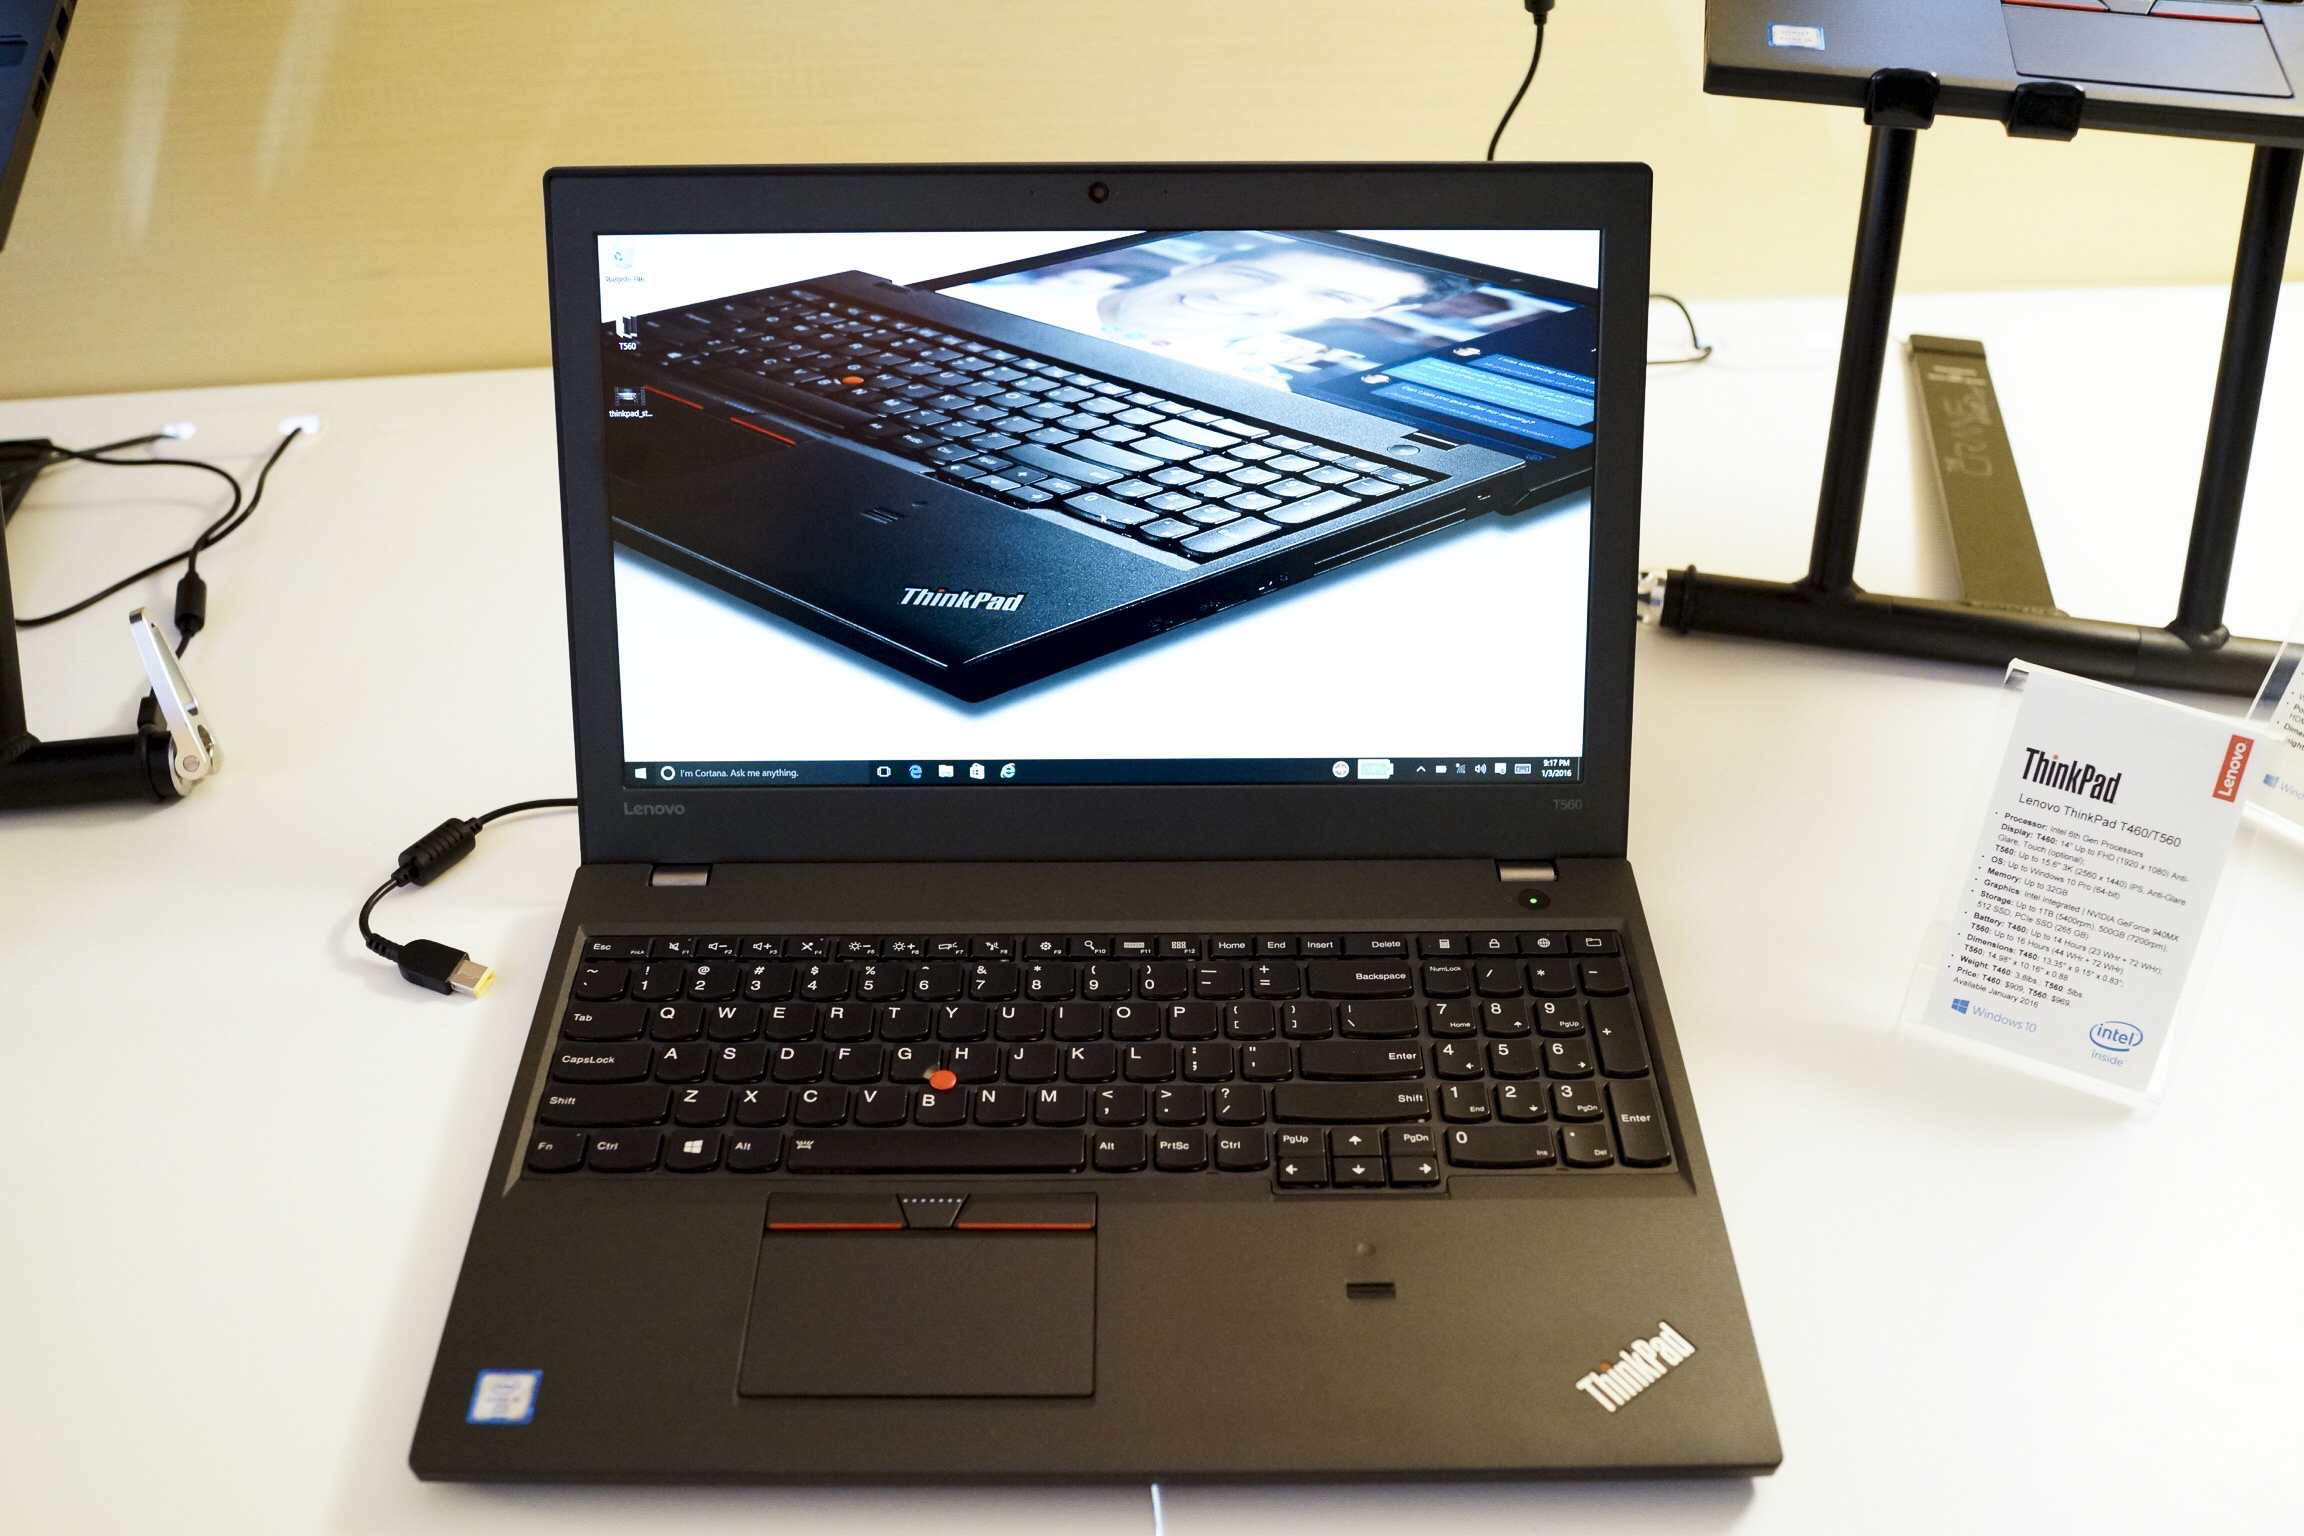 Lenovo ThinkPad X1 Carbon, Updated ThinkPads Announced